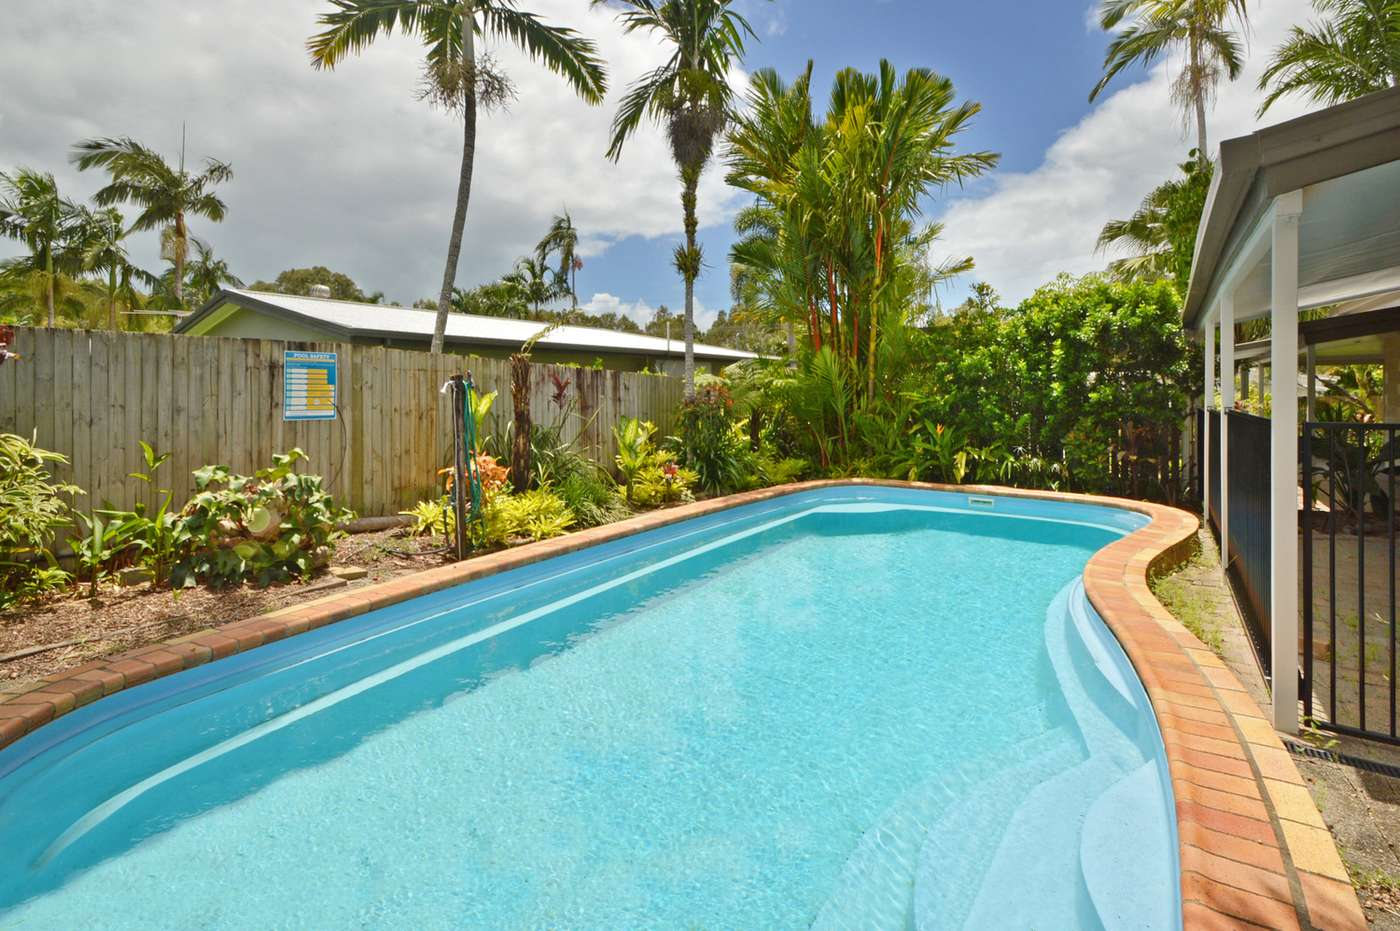 Main view of Homely house listing, Address available on request, Kewarra Beach, QLD 4879